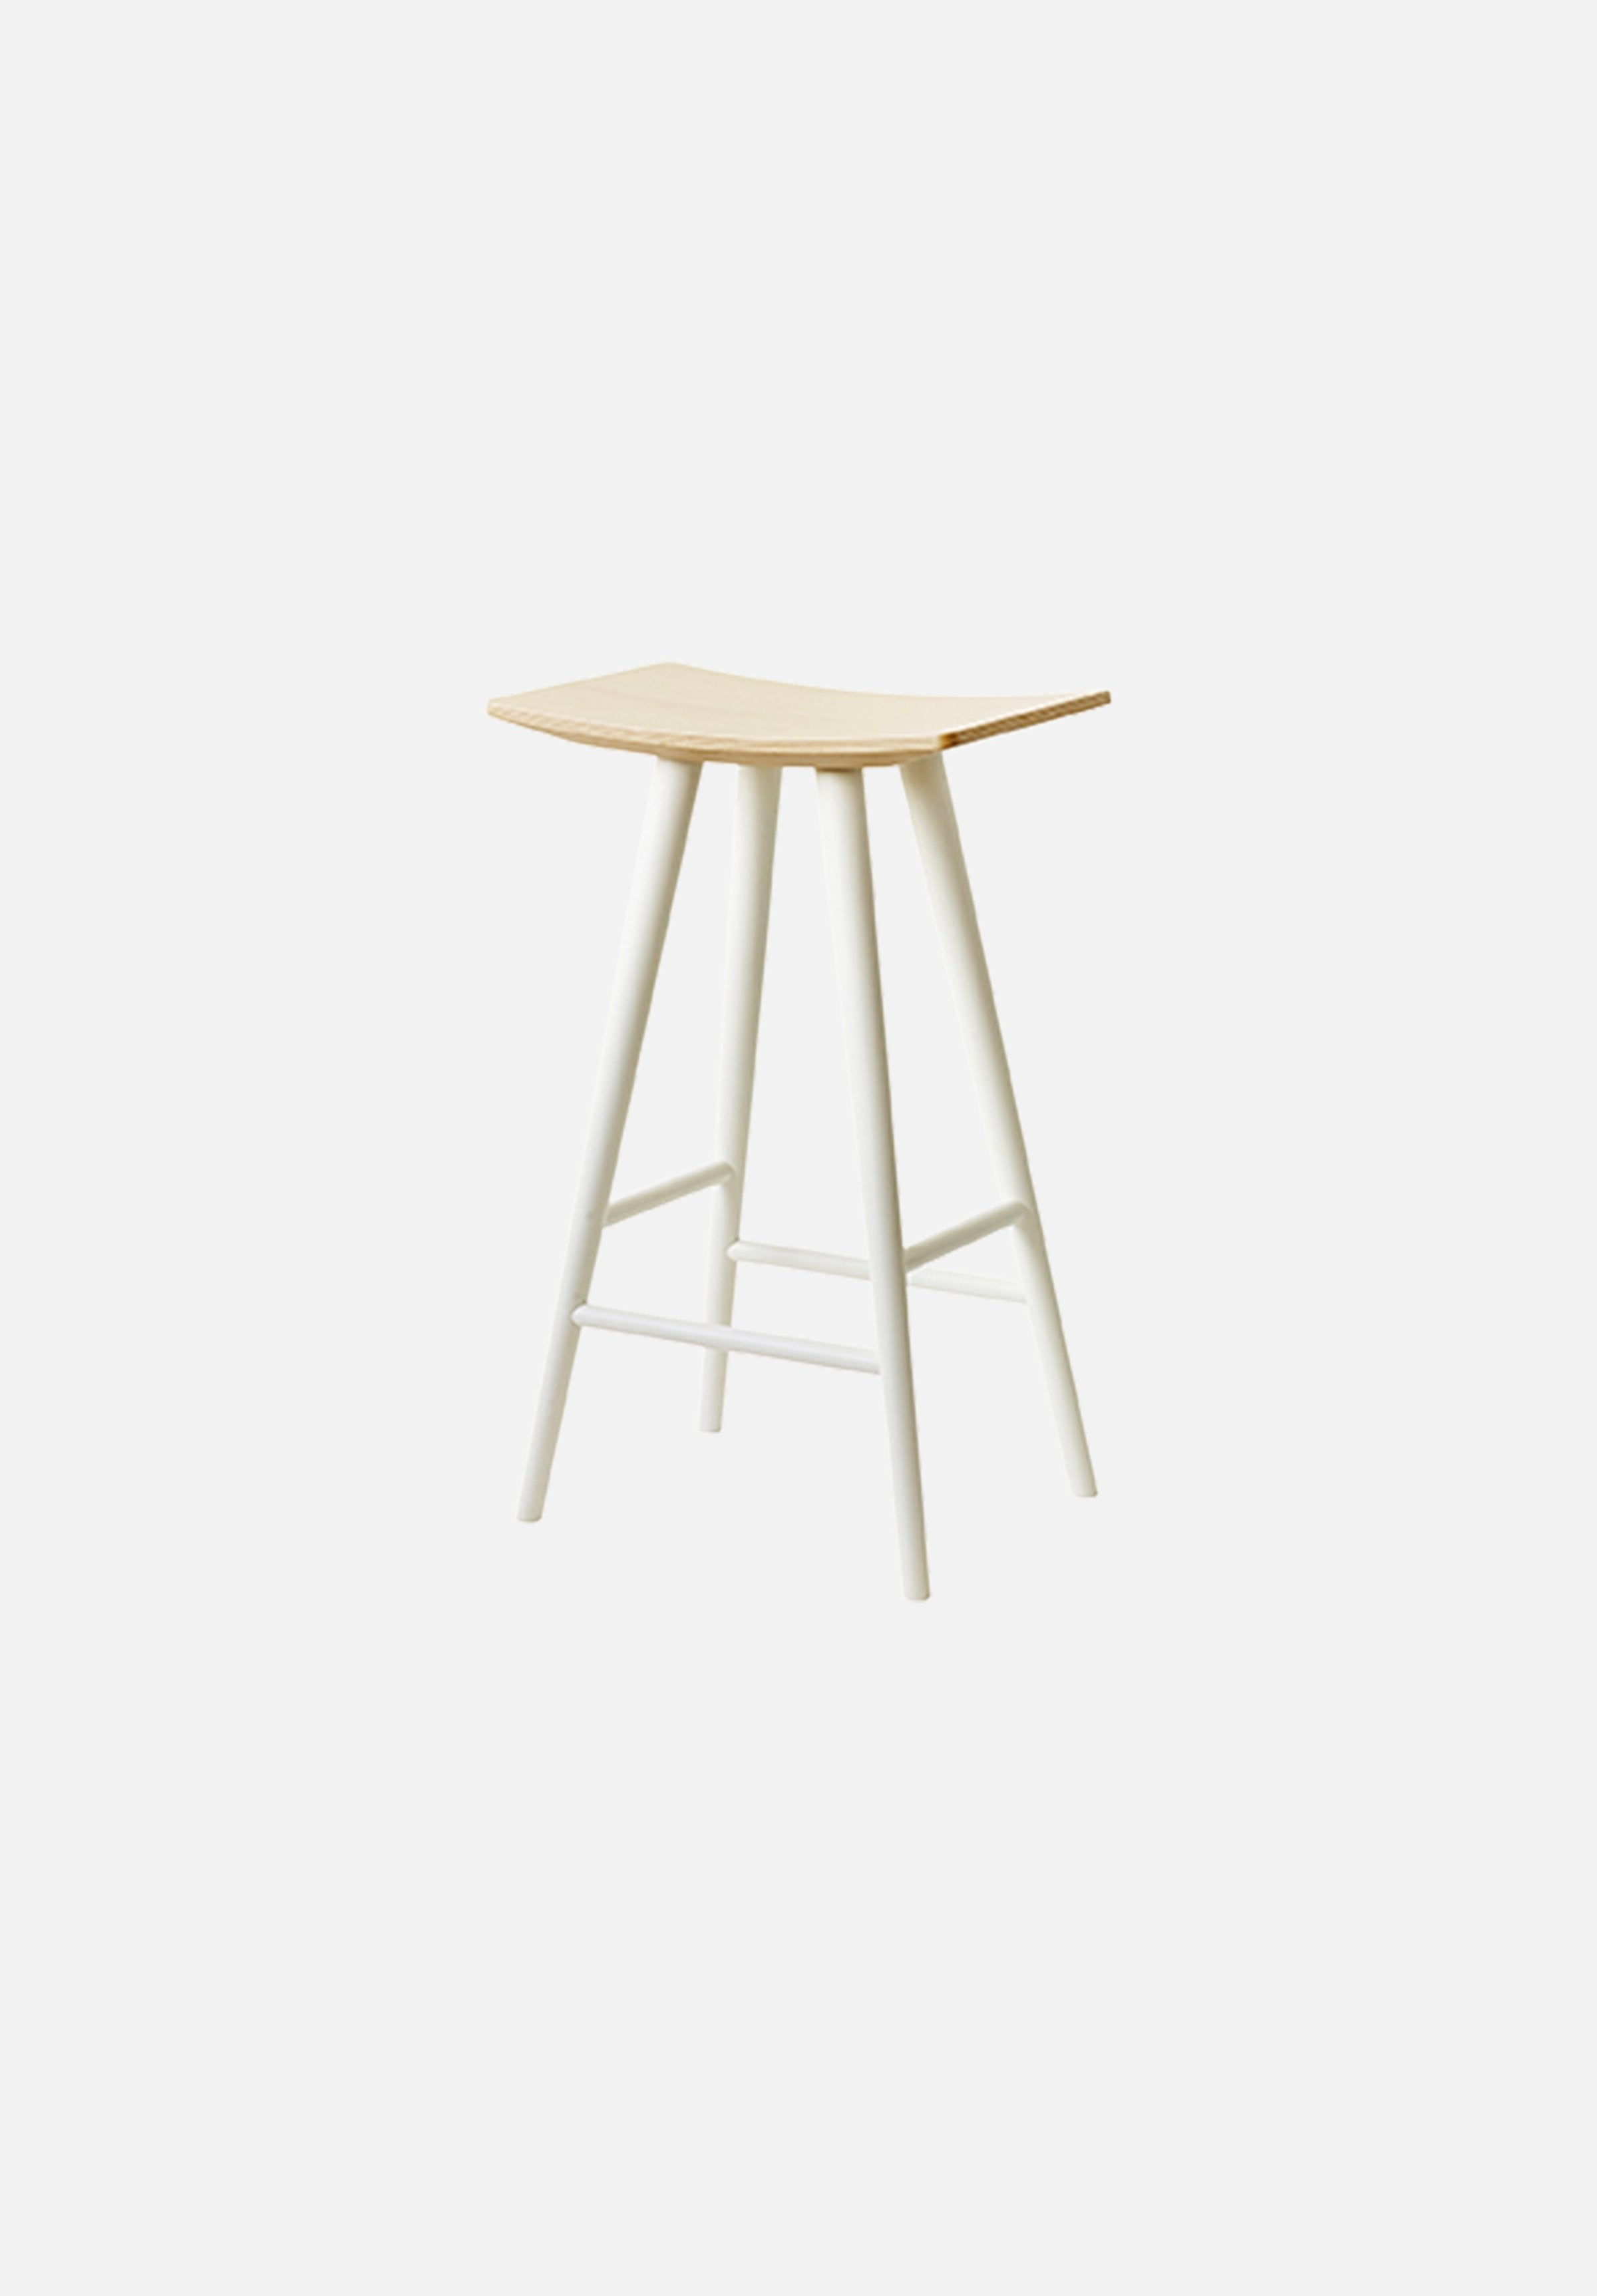 J153 Mikado — 65cm Stool Mikado FDB Møbler white Danish Design Furniture Chairs Average Toronto Canada Design Store